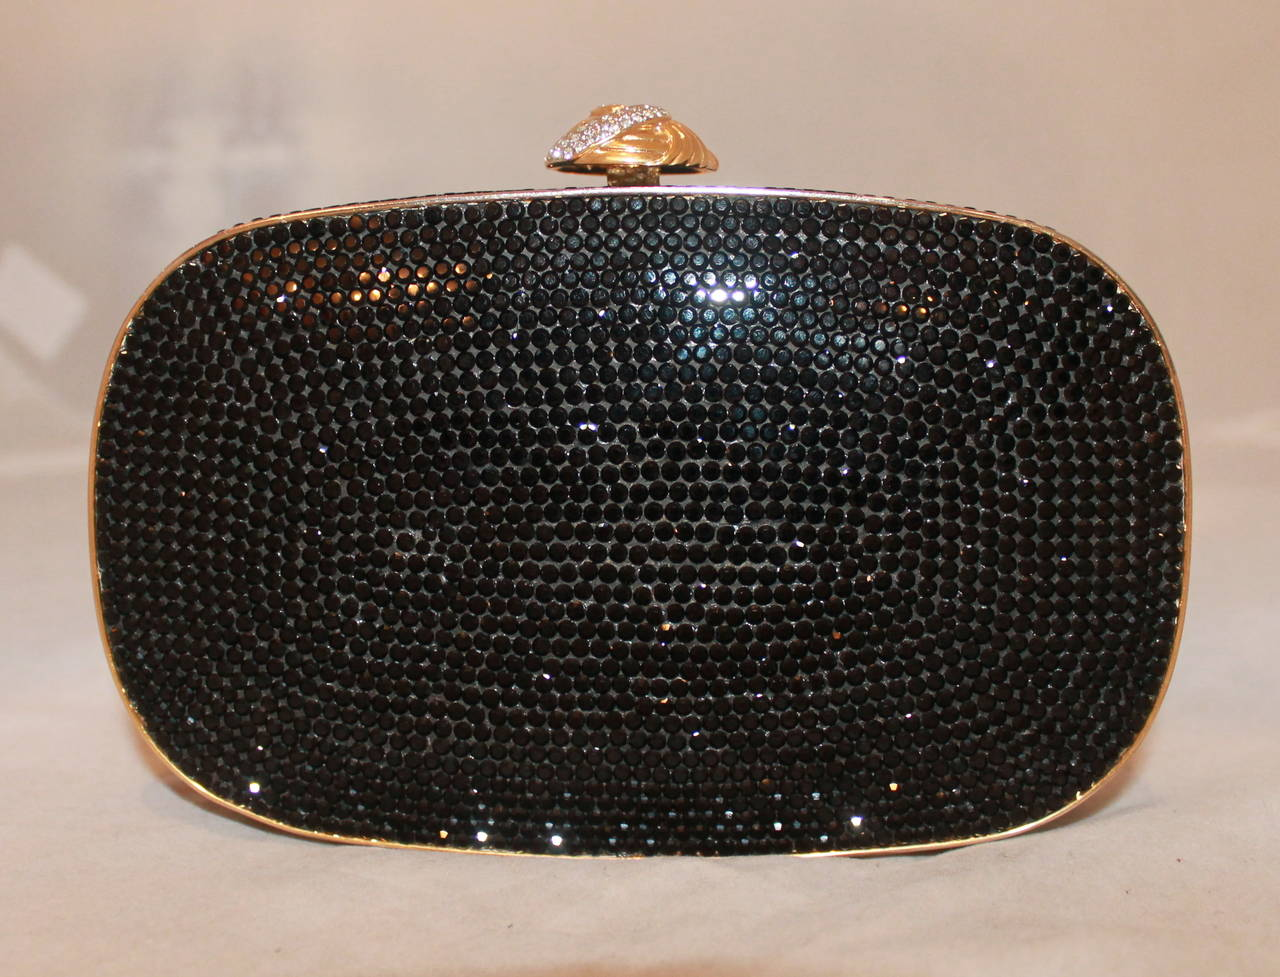 Judith Leiber Vintage Black Crystal Minaudiere. This vintage piece is in excellent condition and has a longer strap. It has 3 stones missing one on side (one in the middle, two on the bottom portion), but other than that everything is impeccable.